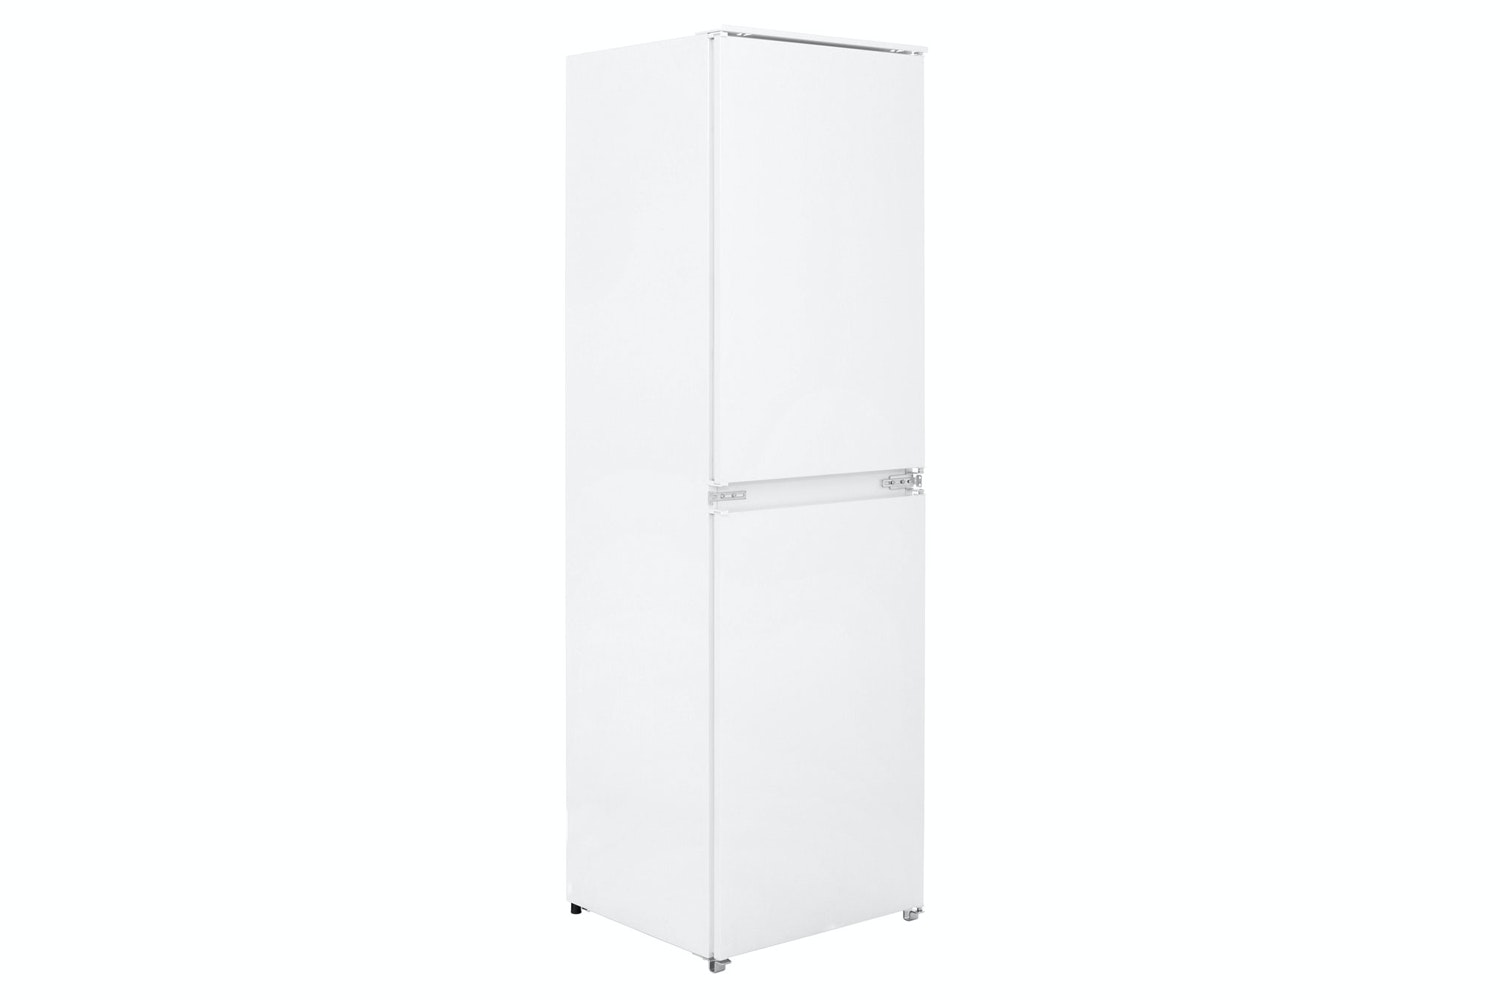 Zanussi Built-in Fridge Freezer | ZBB27450SA